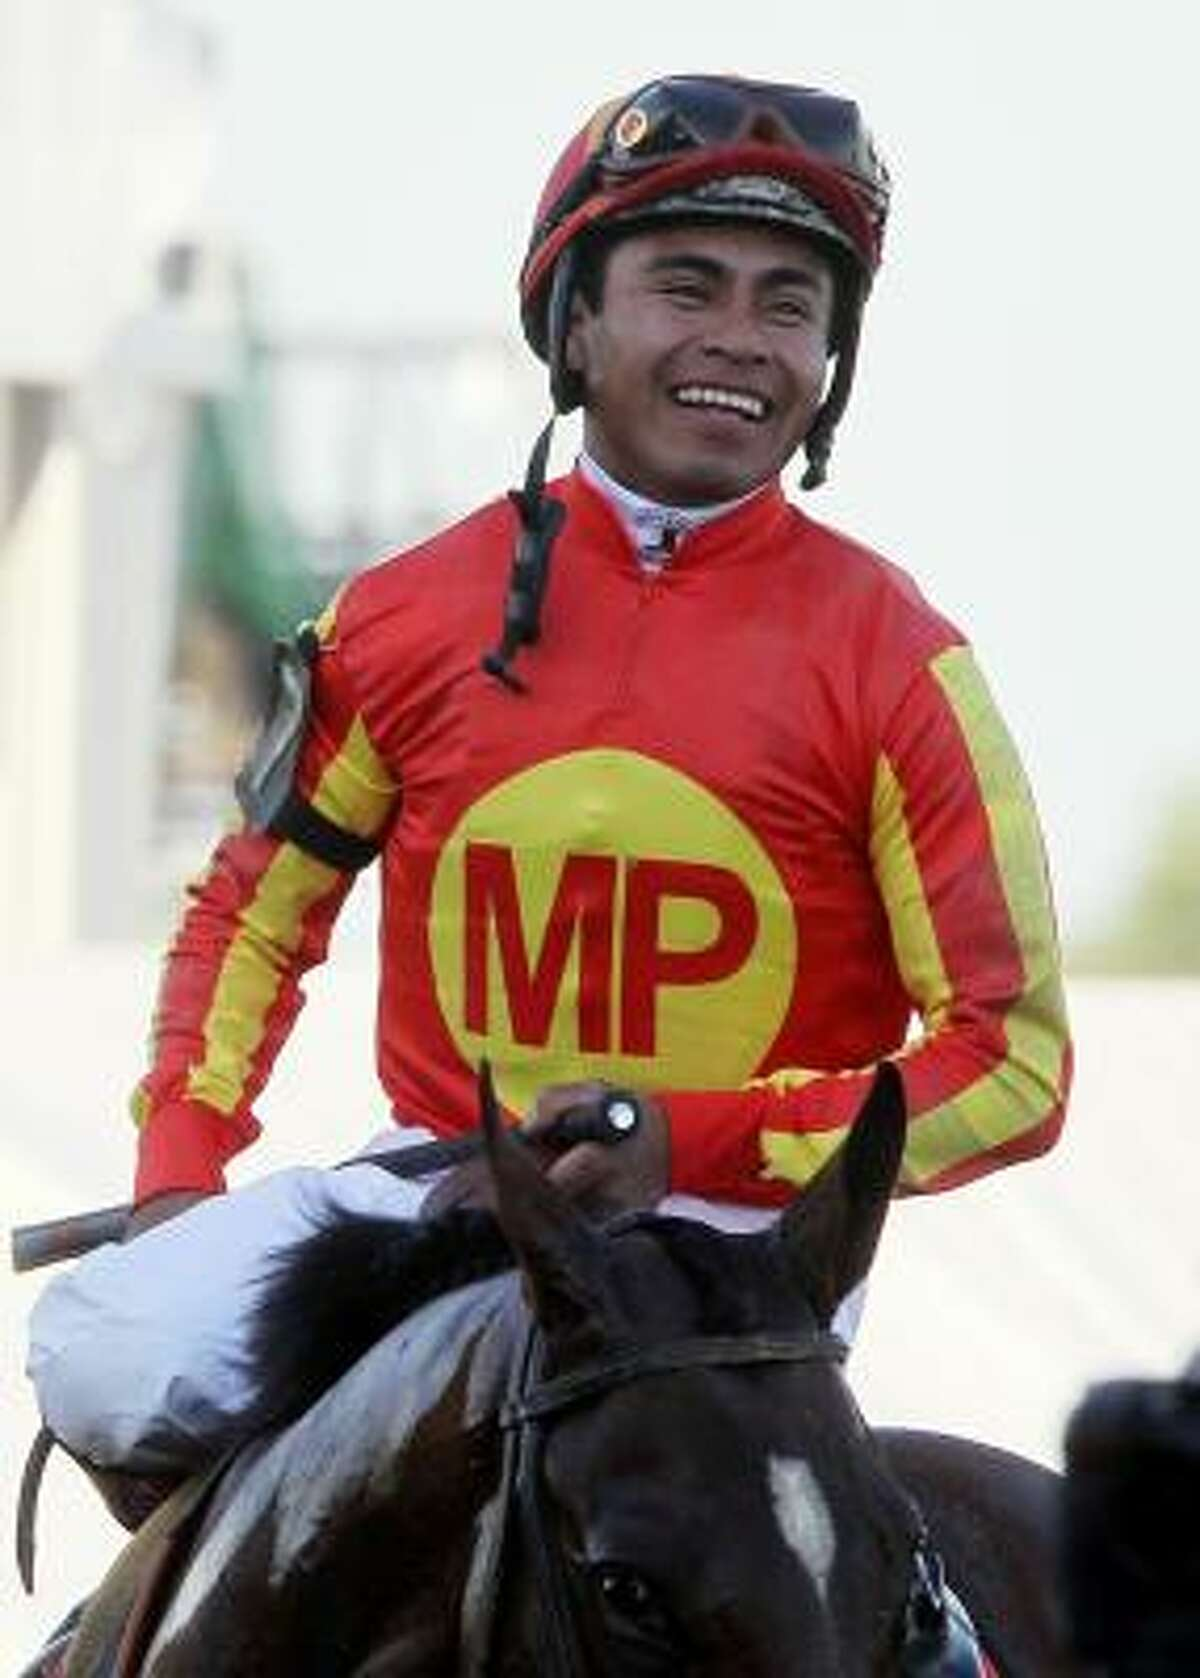 Martin Garcia celebrates after riding Lookin At Lucky to victory in the Preakness Stakes.